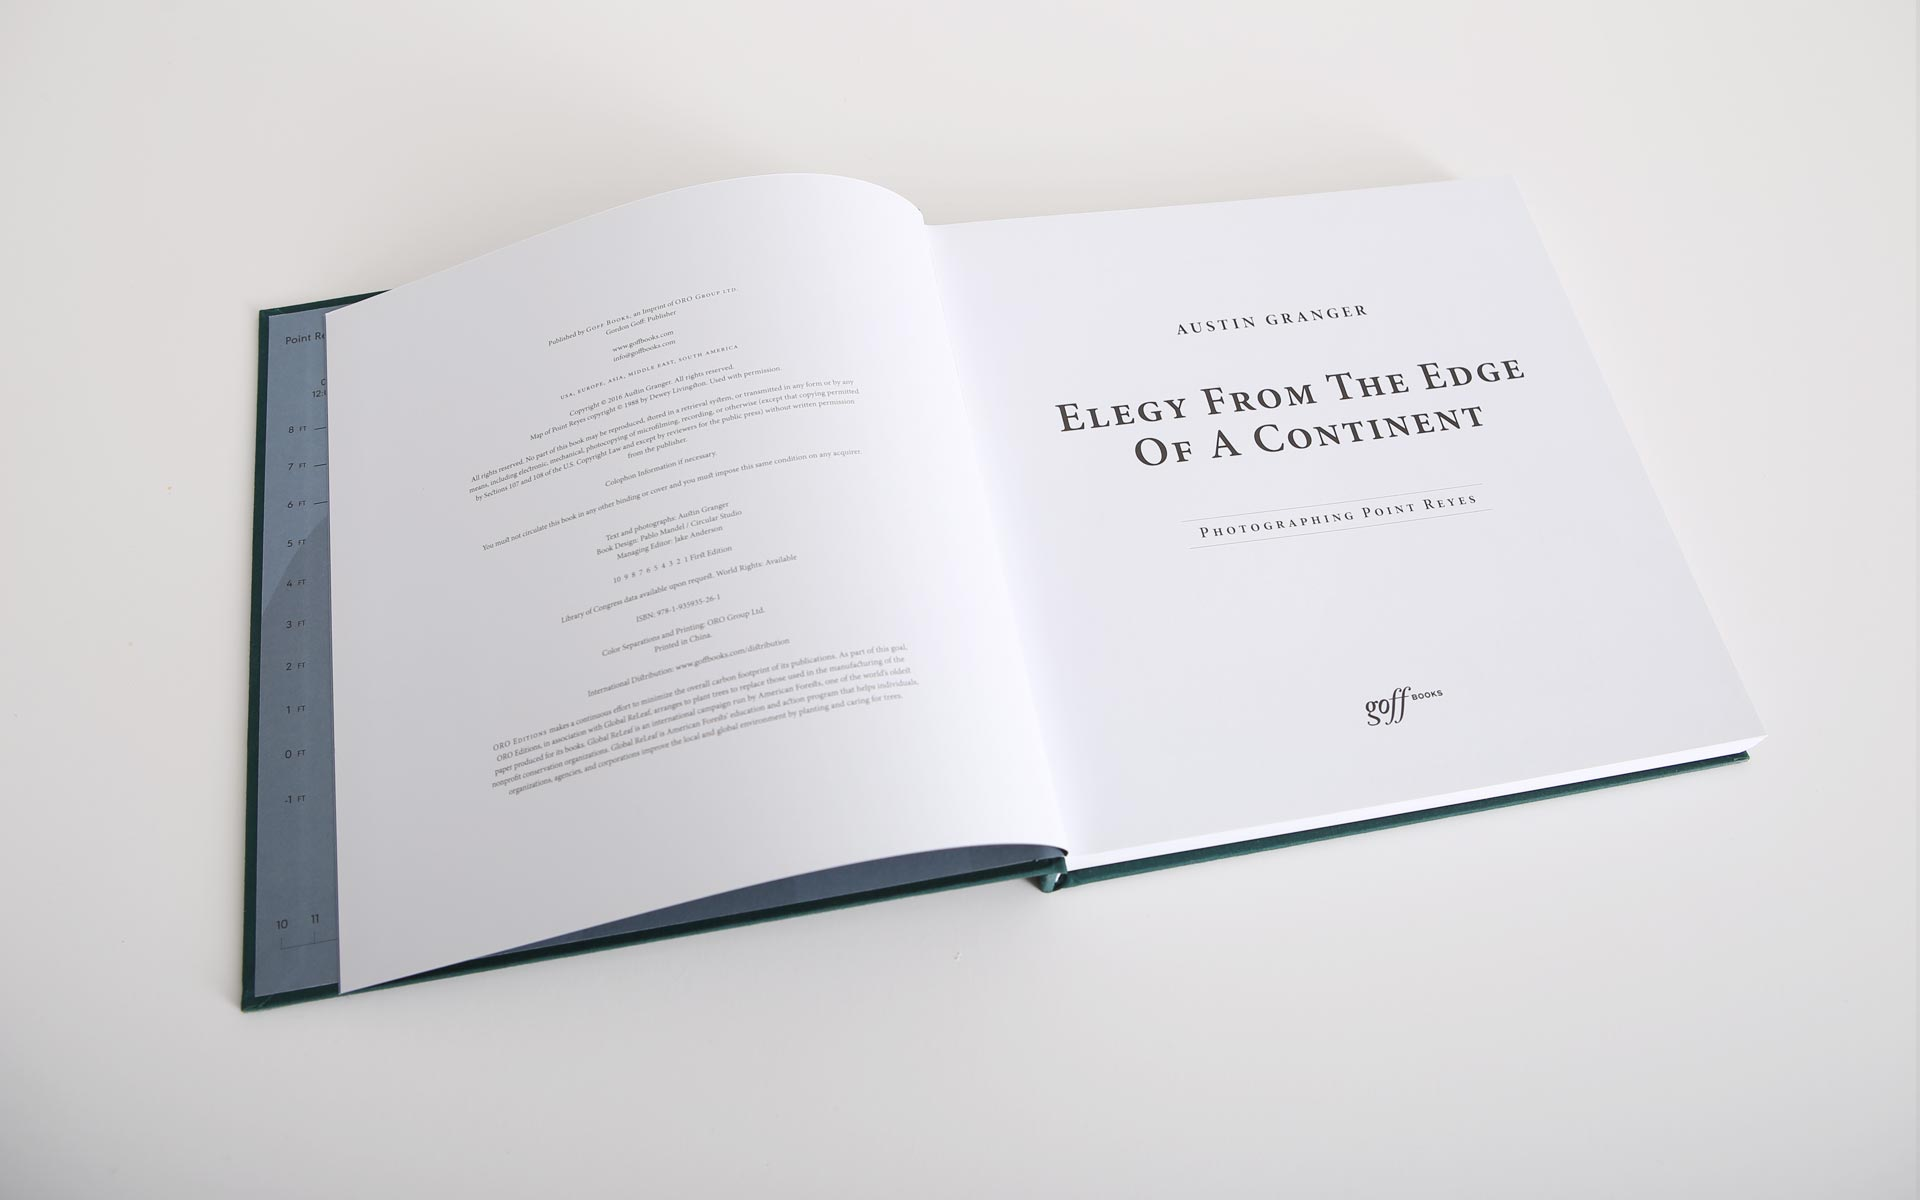 elegy-point-roberts-photography-book-design-2